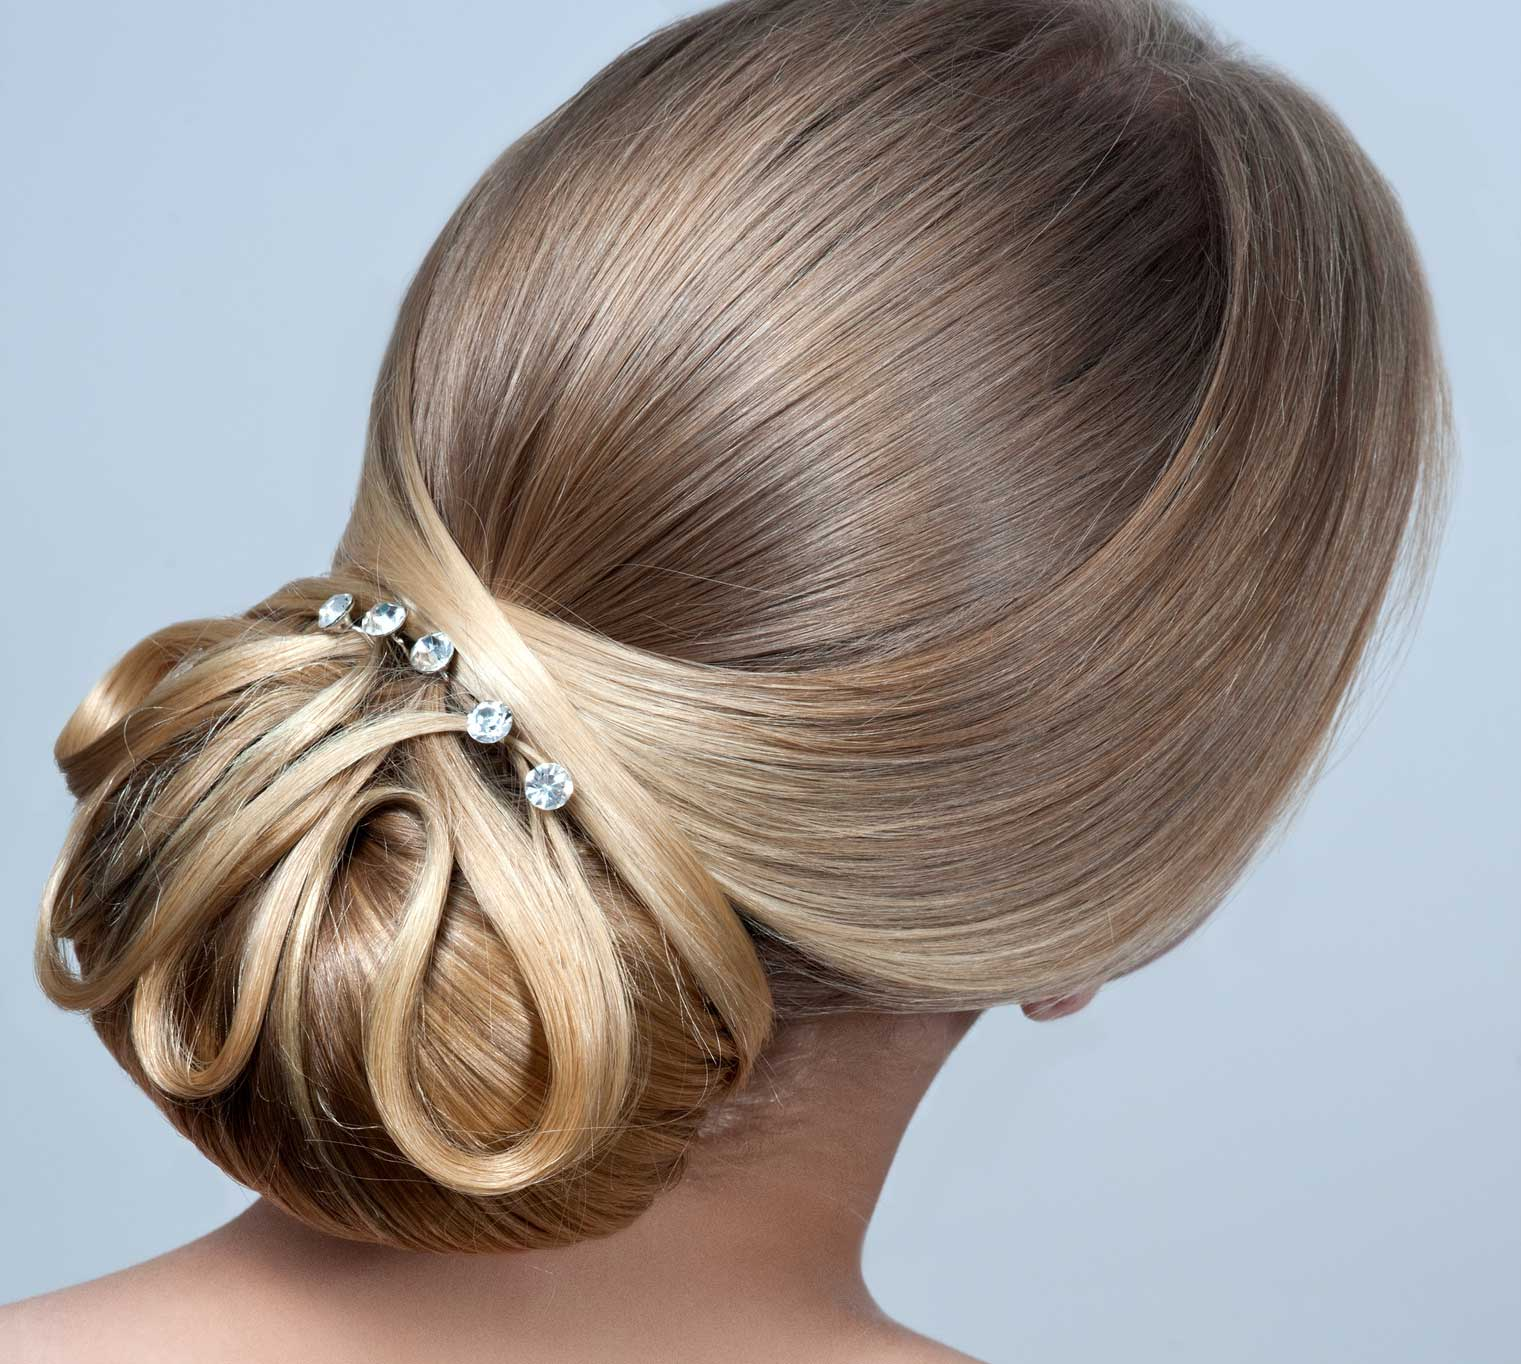 hair-style-services